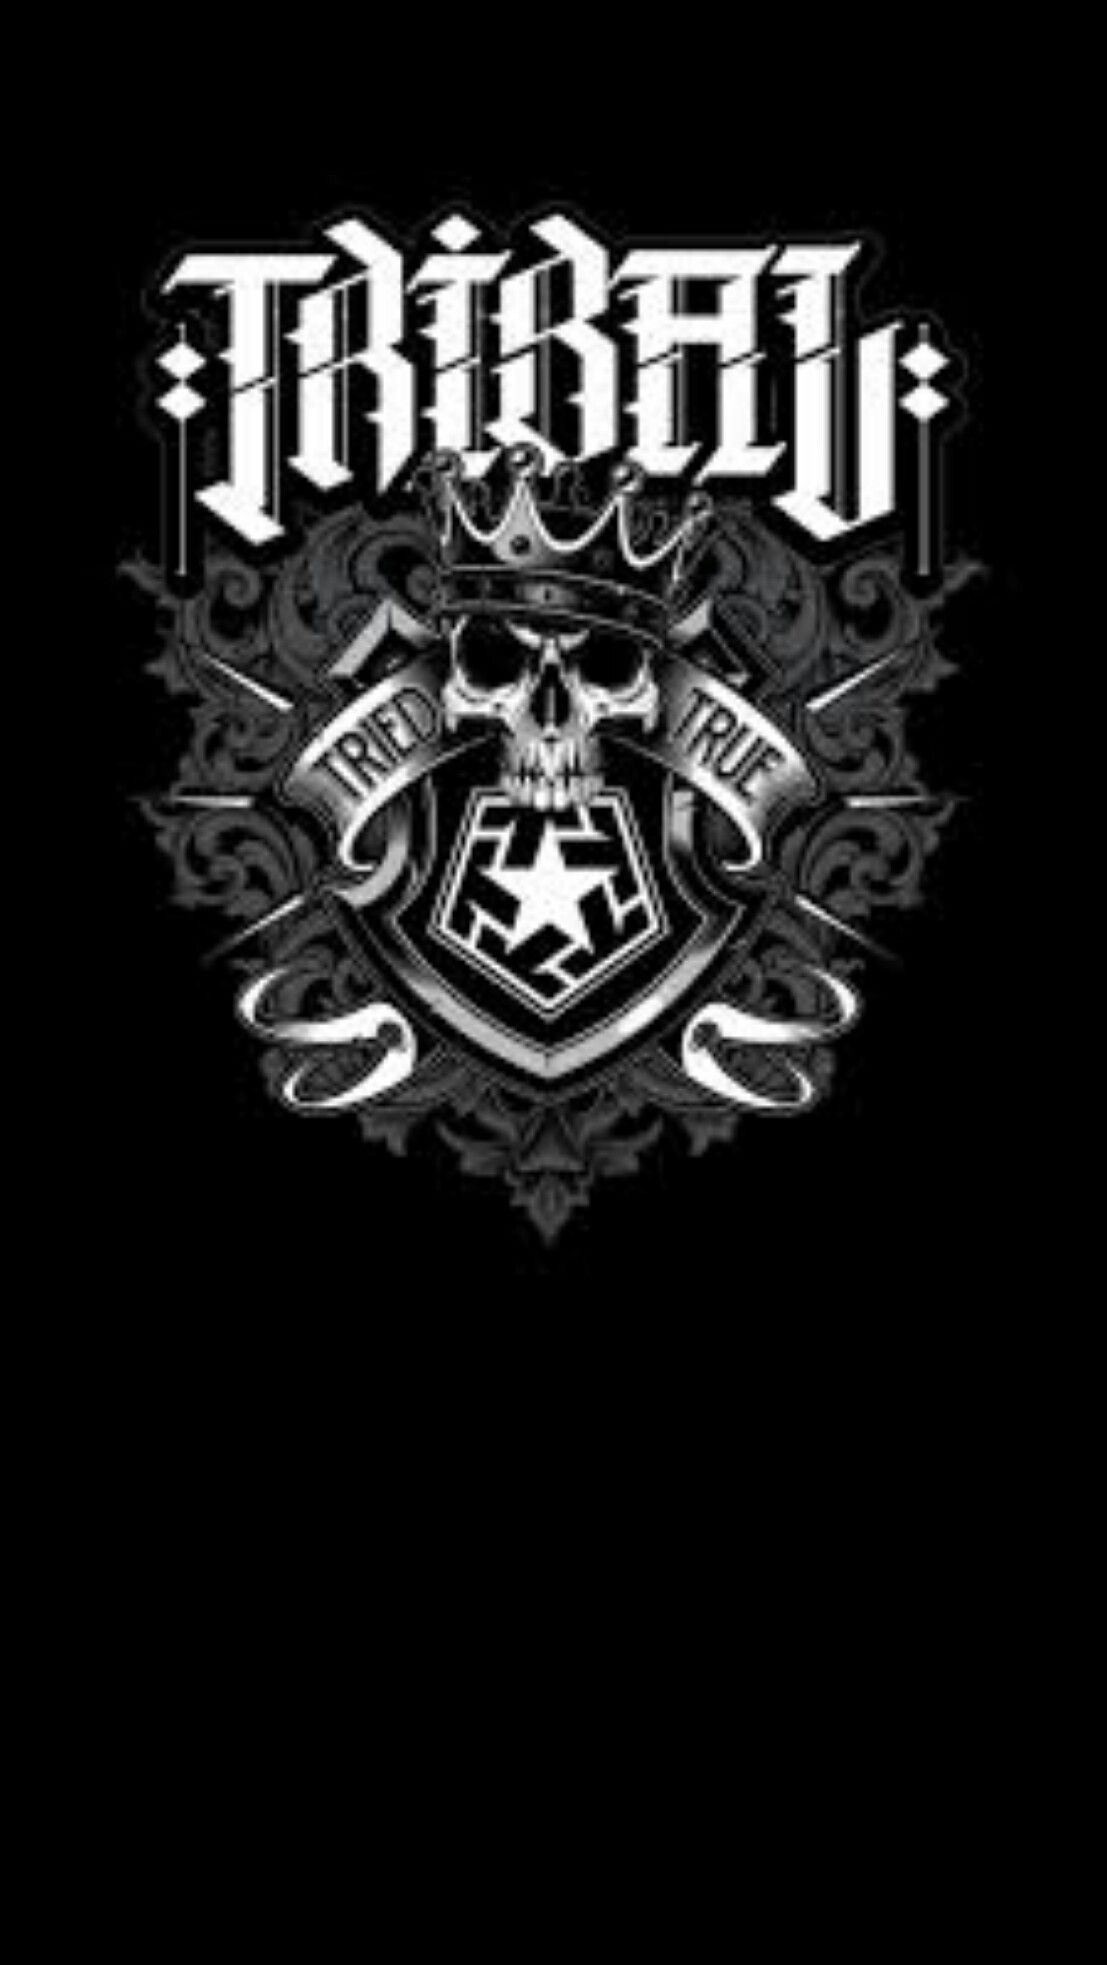 Tribal Black Wallpaper Android Iphone Android Wallpaper Black Skull Wallpaper Black Wallpaper